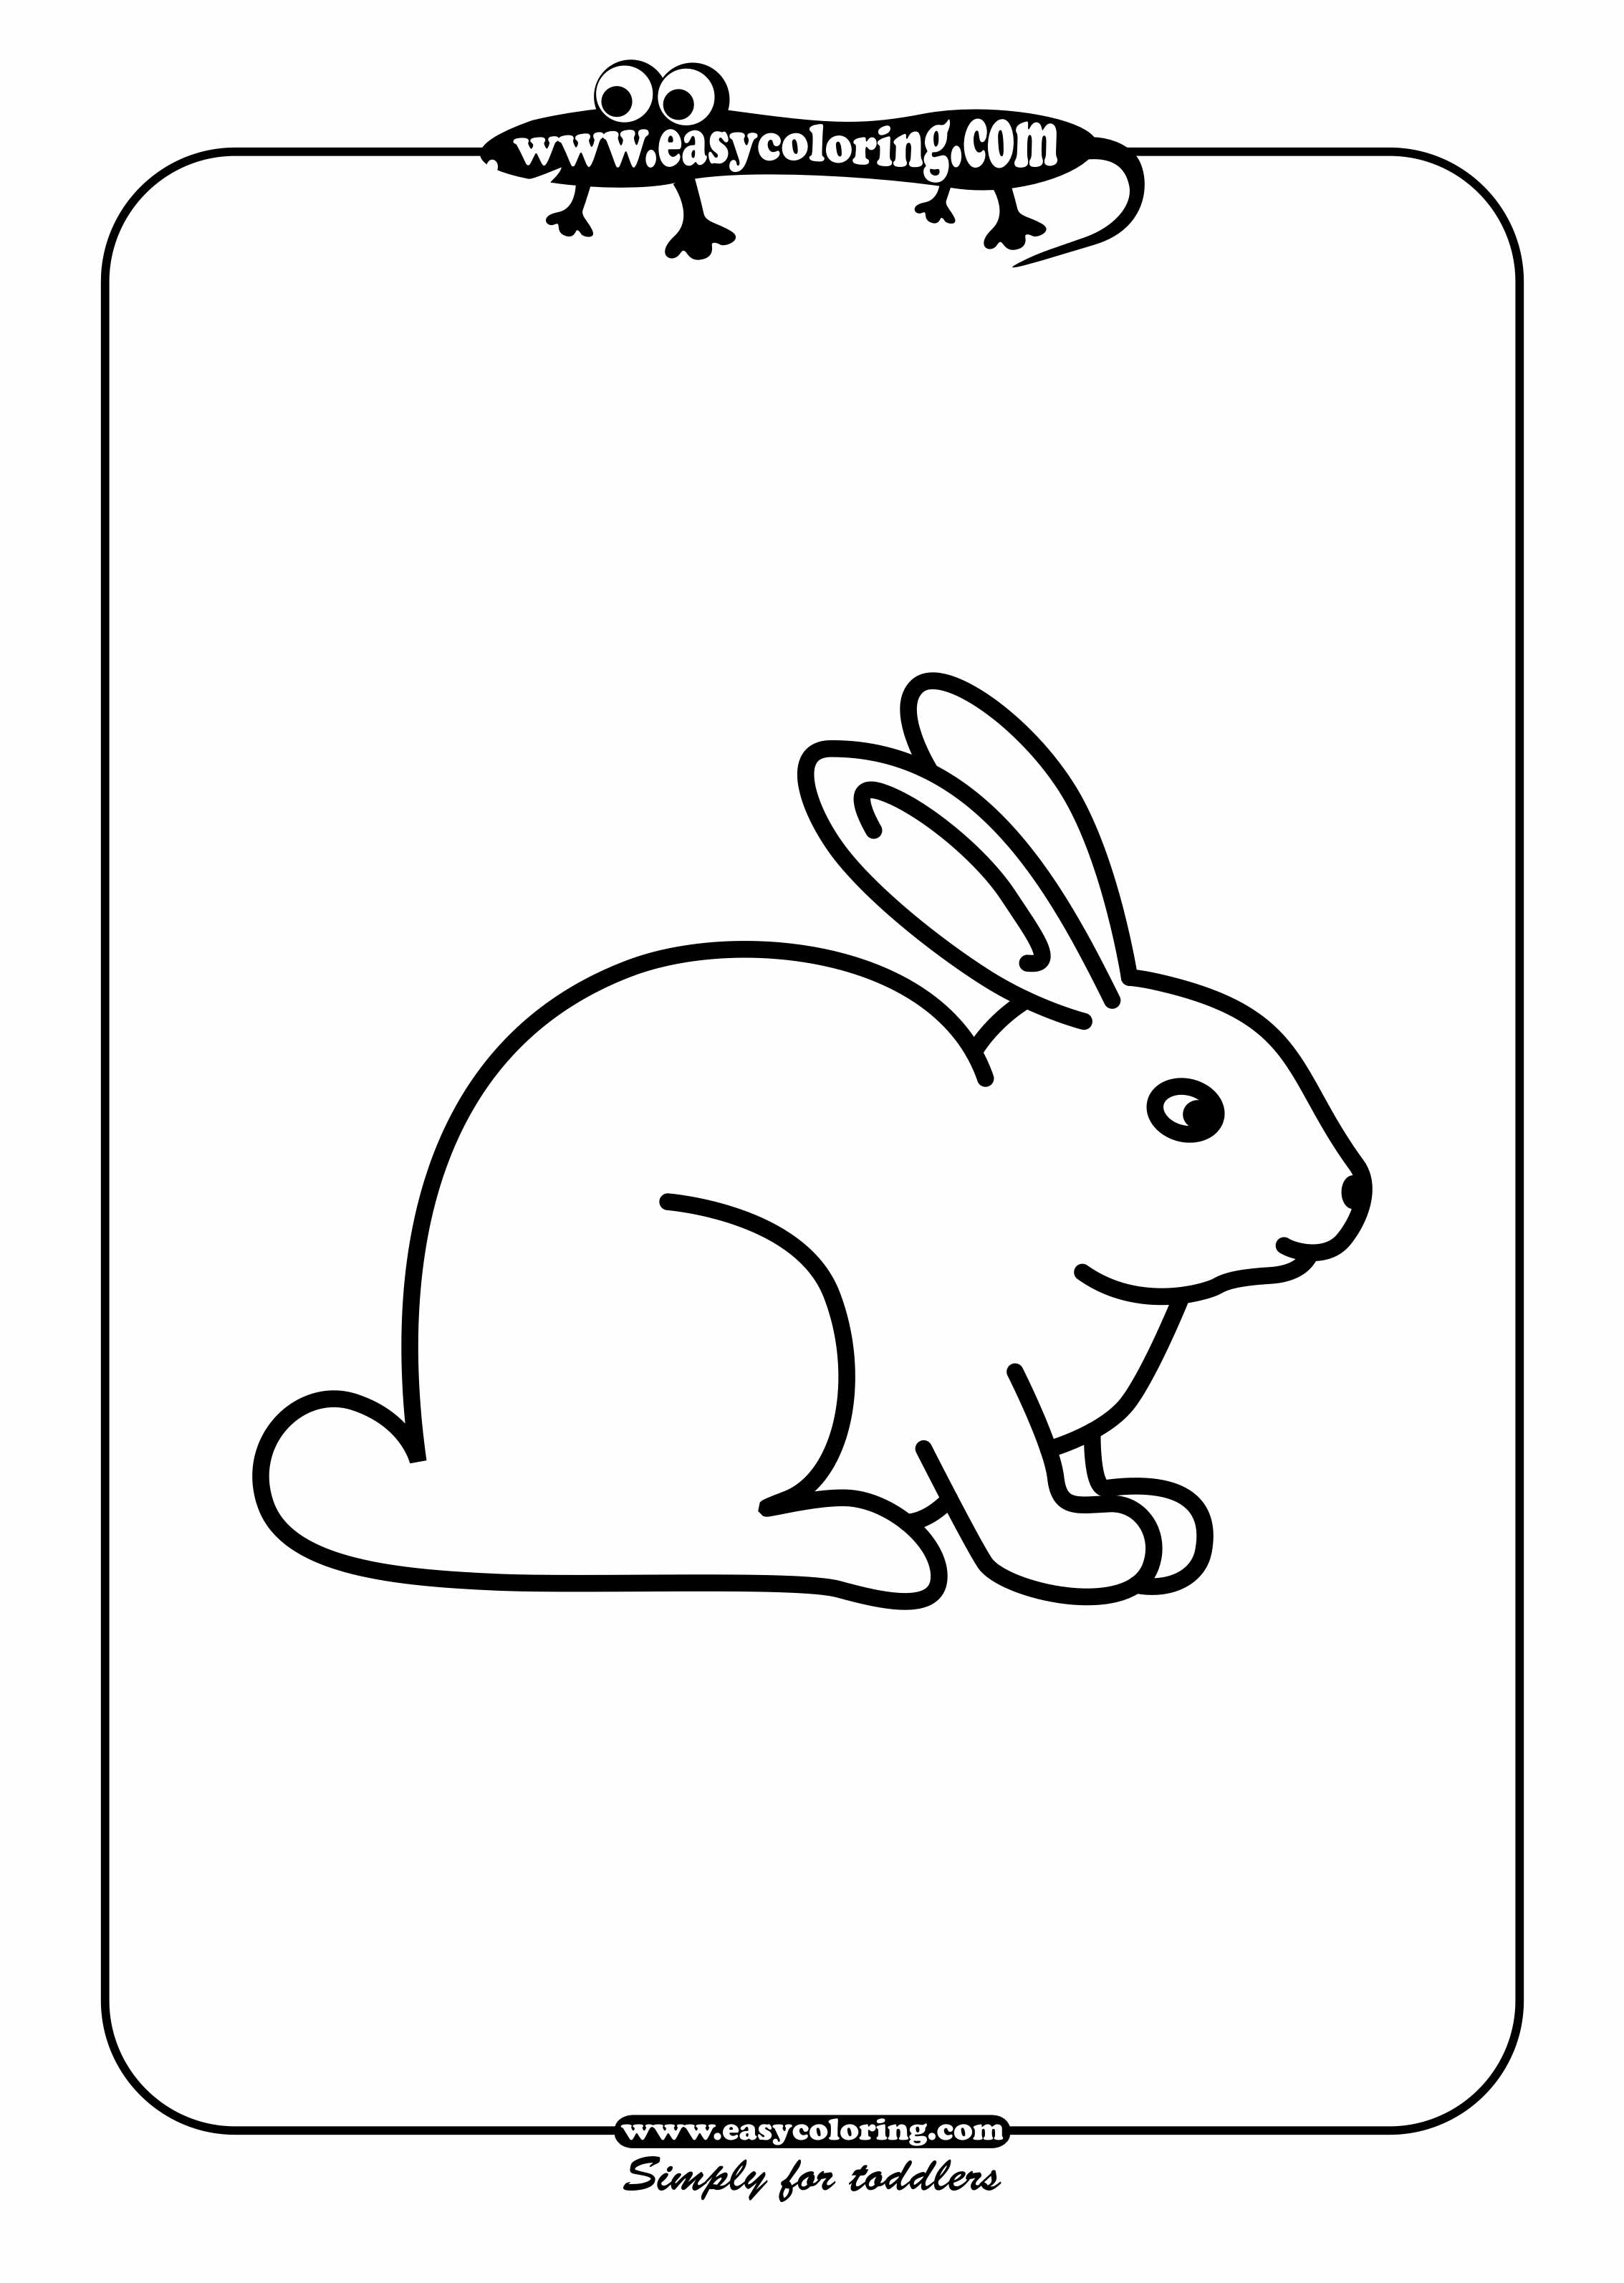 Rabbit - Simple coloring animals | Easy coloring animals ...